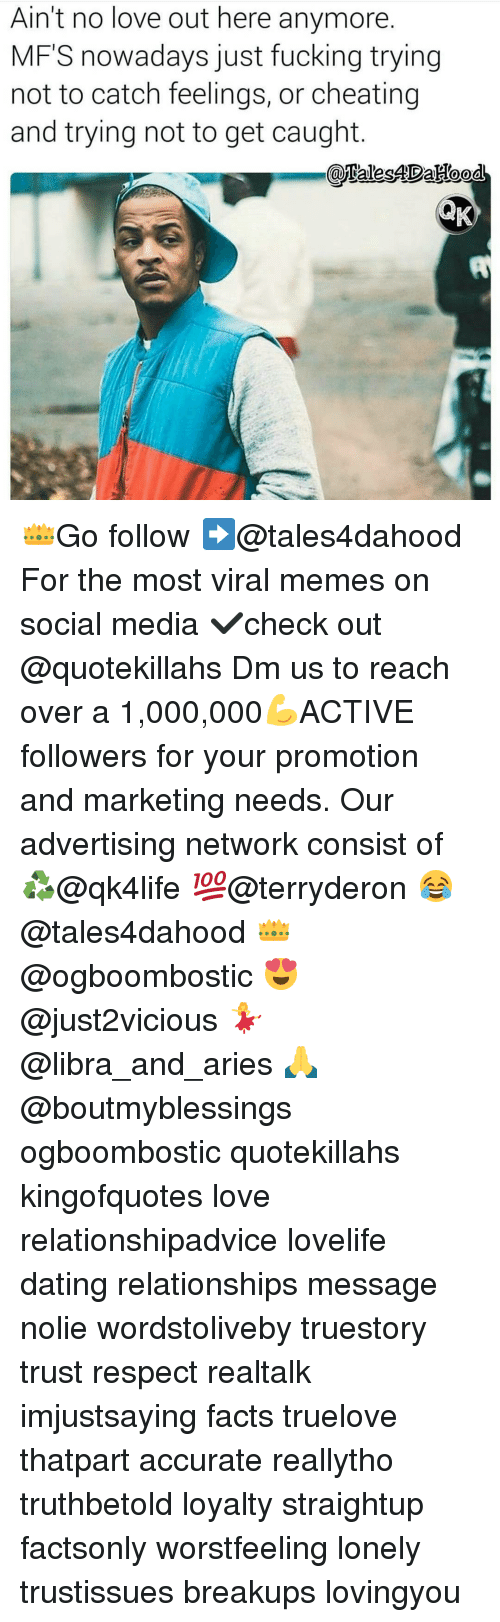 Cheating, Memes, and Relationships: Ain't no love out here anymore.  MFS nowadays just fucking trying  not to catch feelings, or cheating  and trying not to get caught  AND 👑Go follow ➡@tales4dahood For the most viral memes on social media ✔check out @quotekillahs Dm us to reach over a 1,000,000💪ACTIVE followers for your promotion and marketing needs. Our advertising network consist of ♻@qk4life 💯@terryderon 😂@tales4dahood 👑@ogboombostic 😍@just2vicious 💃@libra_and_aries 🙏@boutmyblessings ogboombostic quotekillahs kingofquotes love relationshipadvice lovelife dating relationships message nolie wordstoliveby truestory trust respect realtalk imjustsaying facts truelove thatpart accurate reallytho truthbetold loyalty straightup factsonly worstfeeling lonely trustissues breakups lovingyou